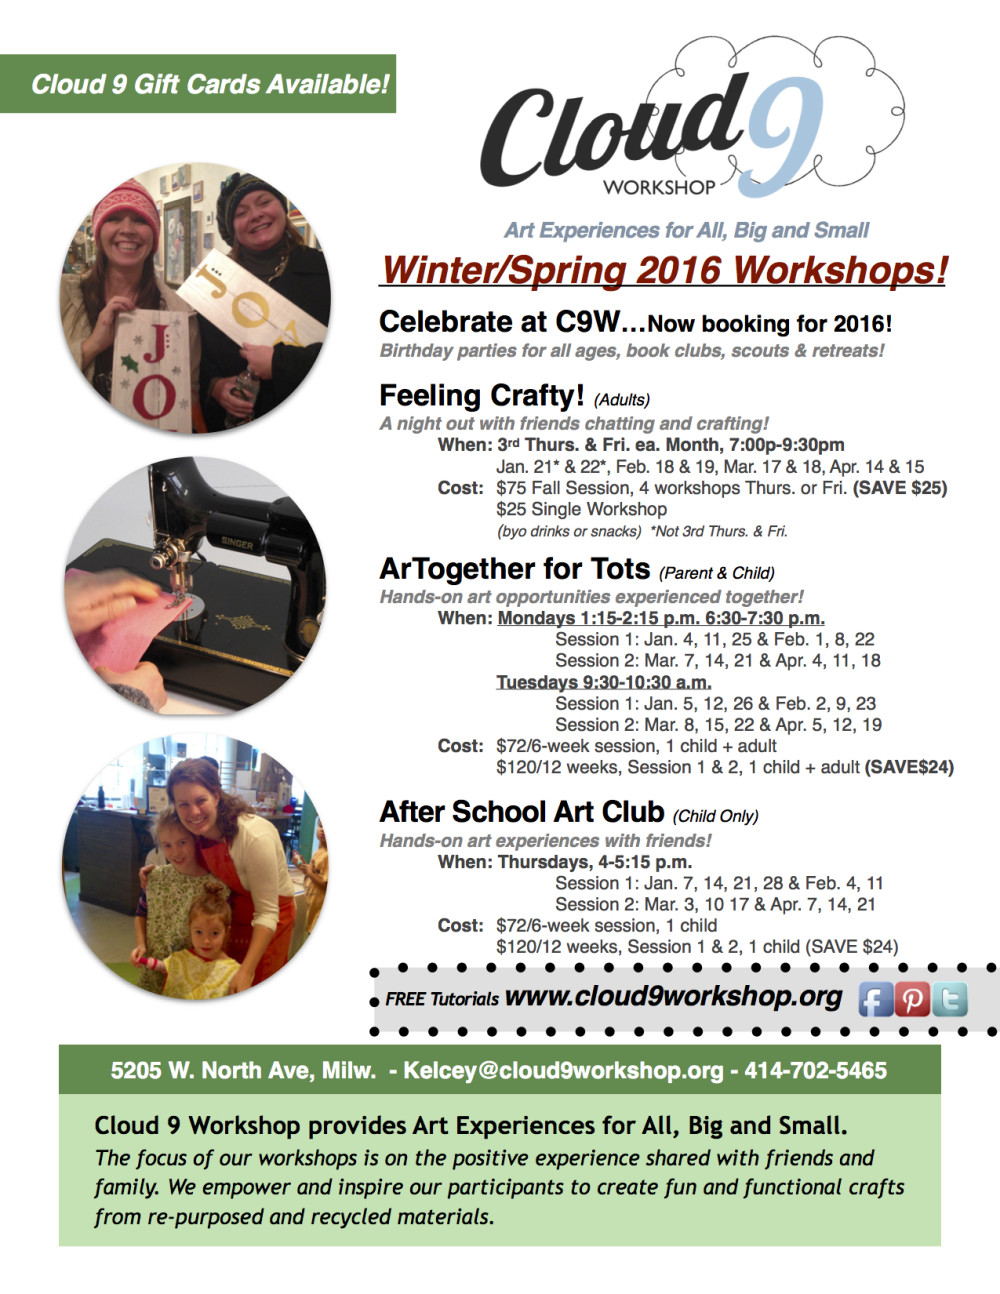 NEW! Winter/Spring 2016 Workshop Schedule